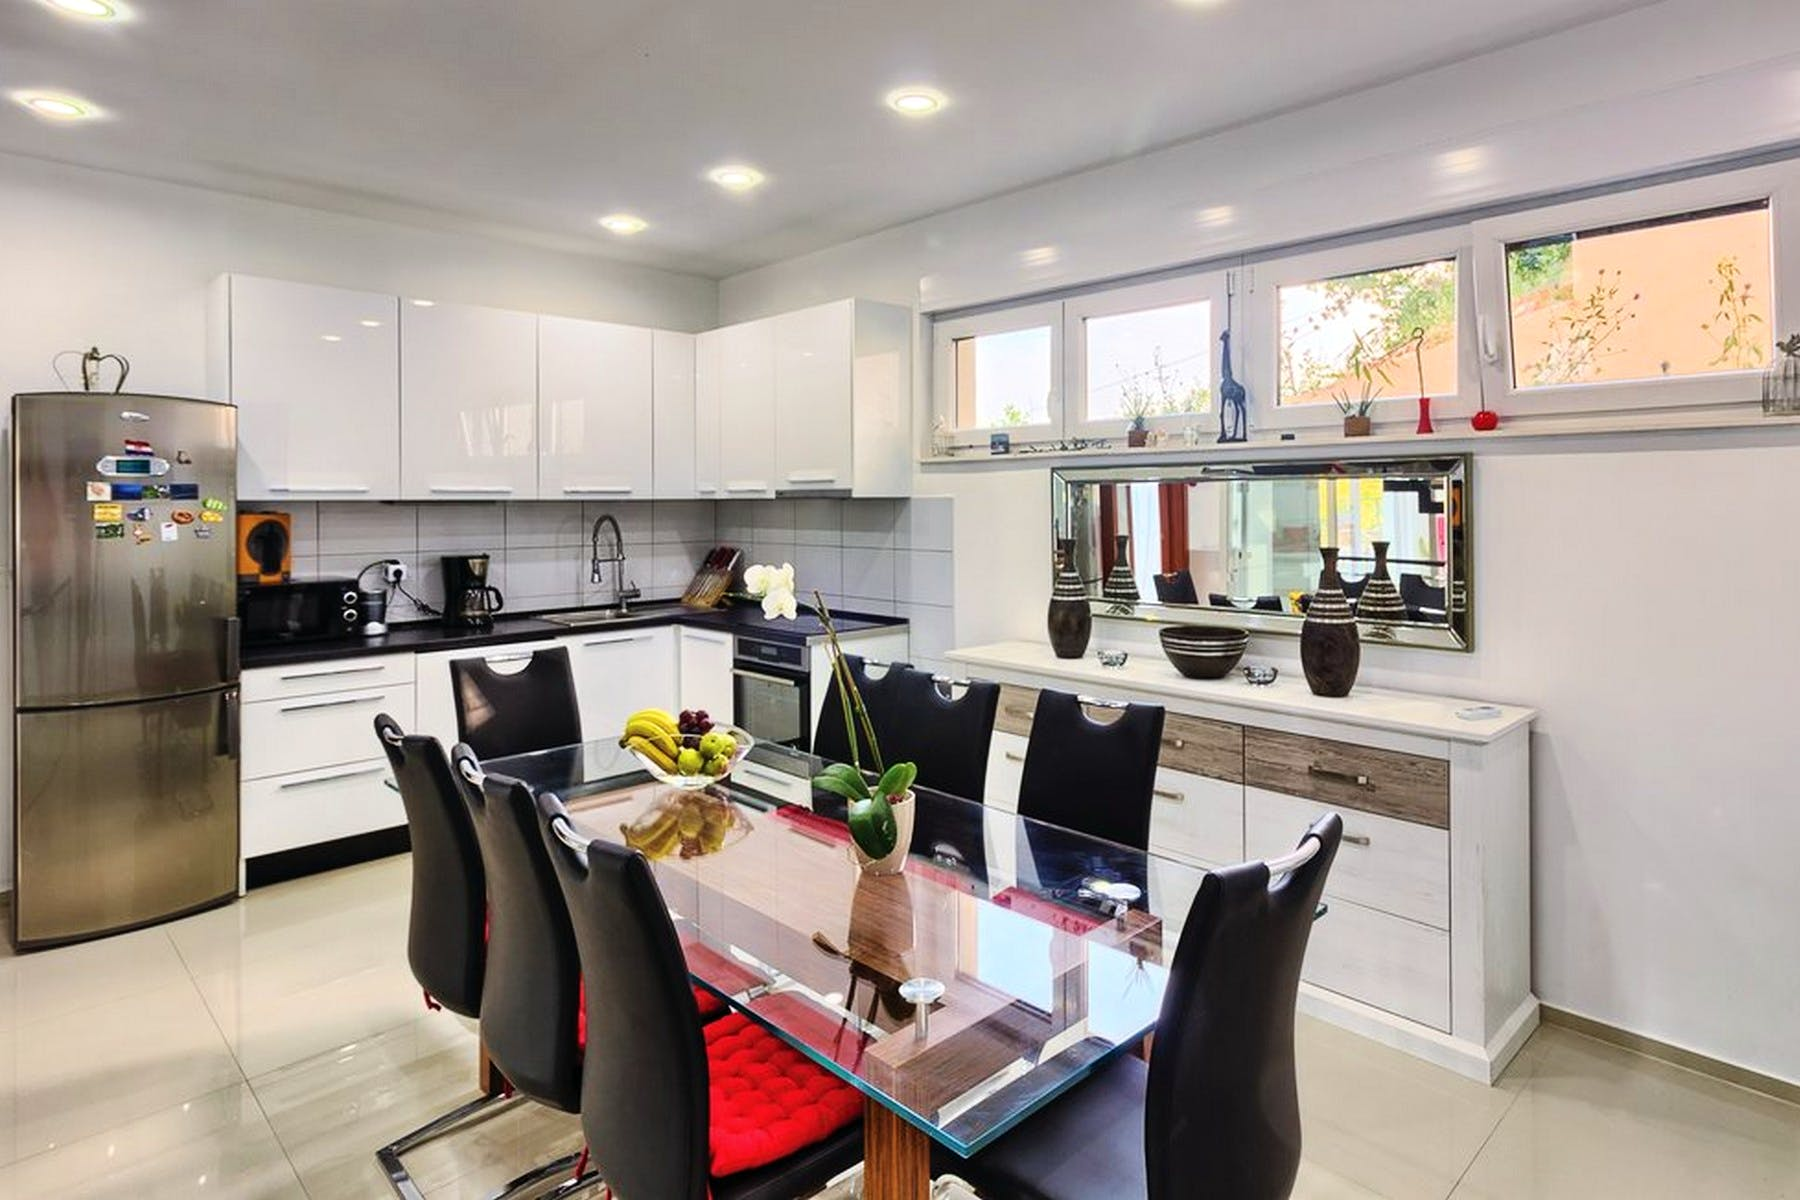 Modern and equipped kitchen with dining area